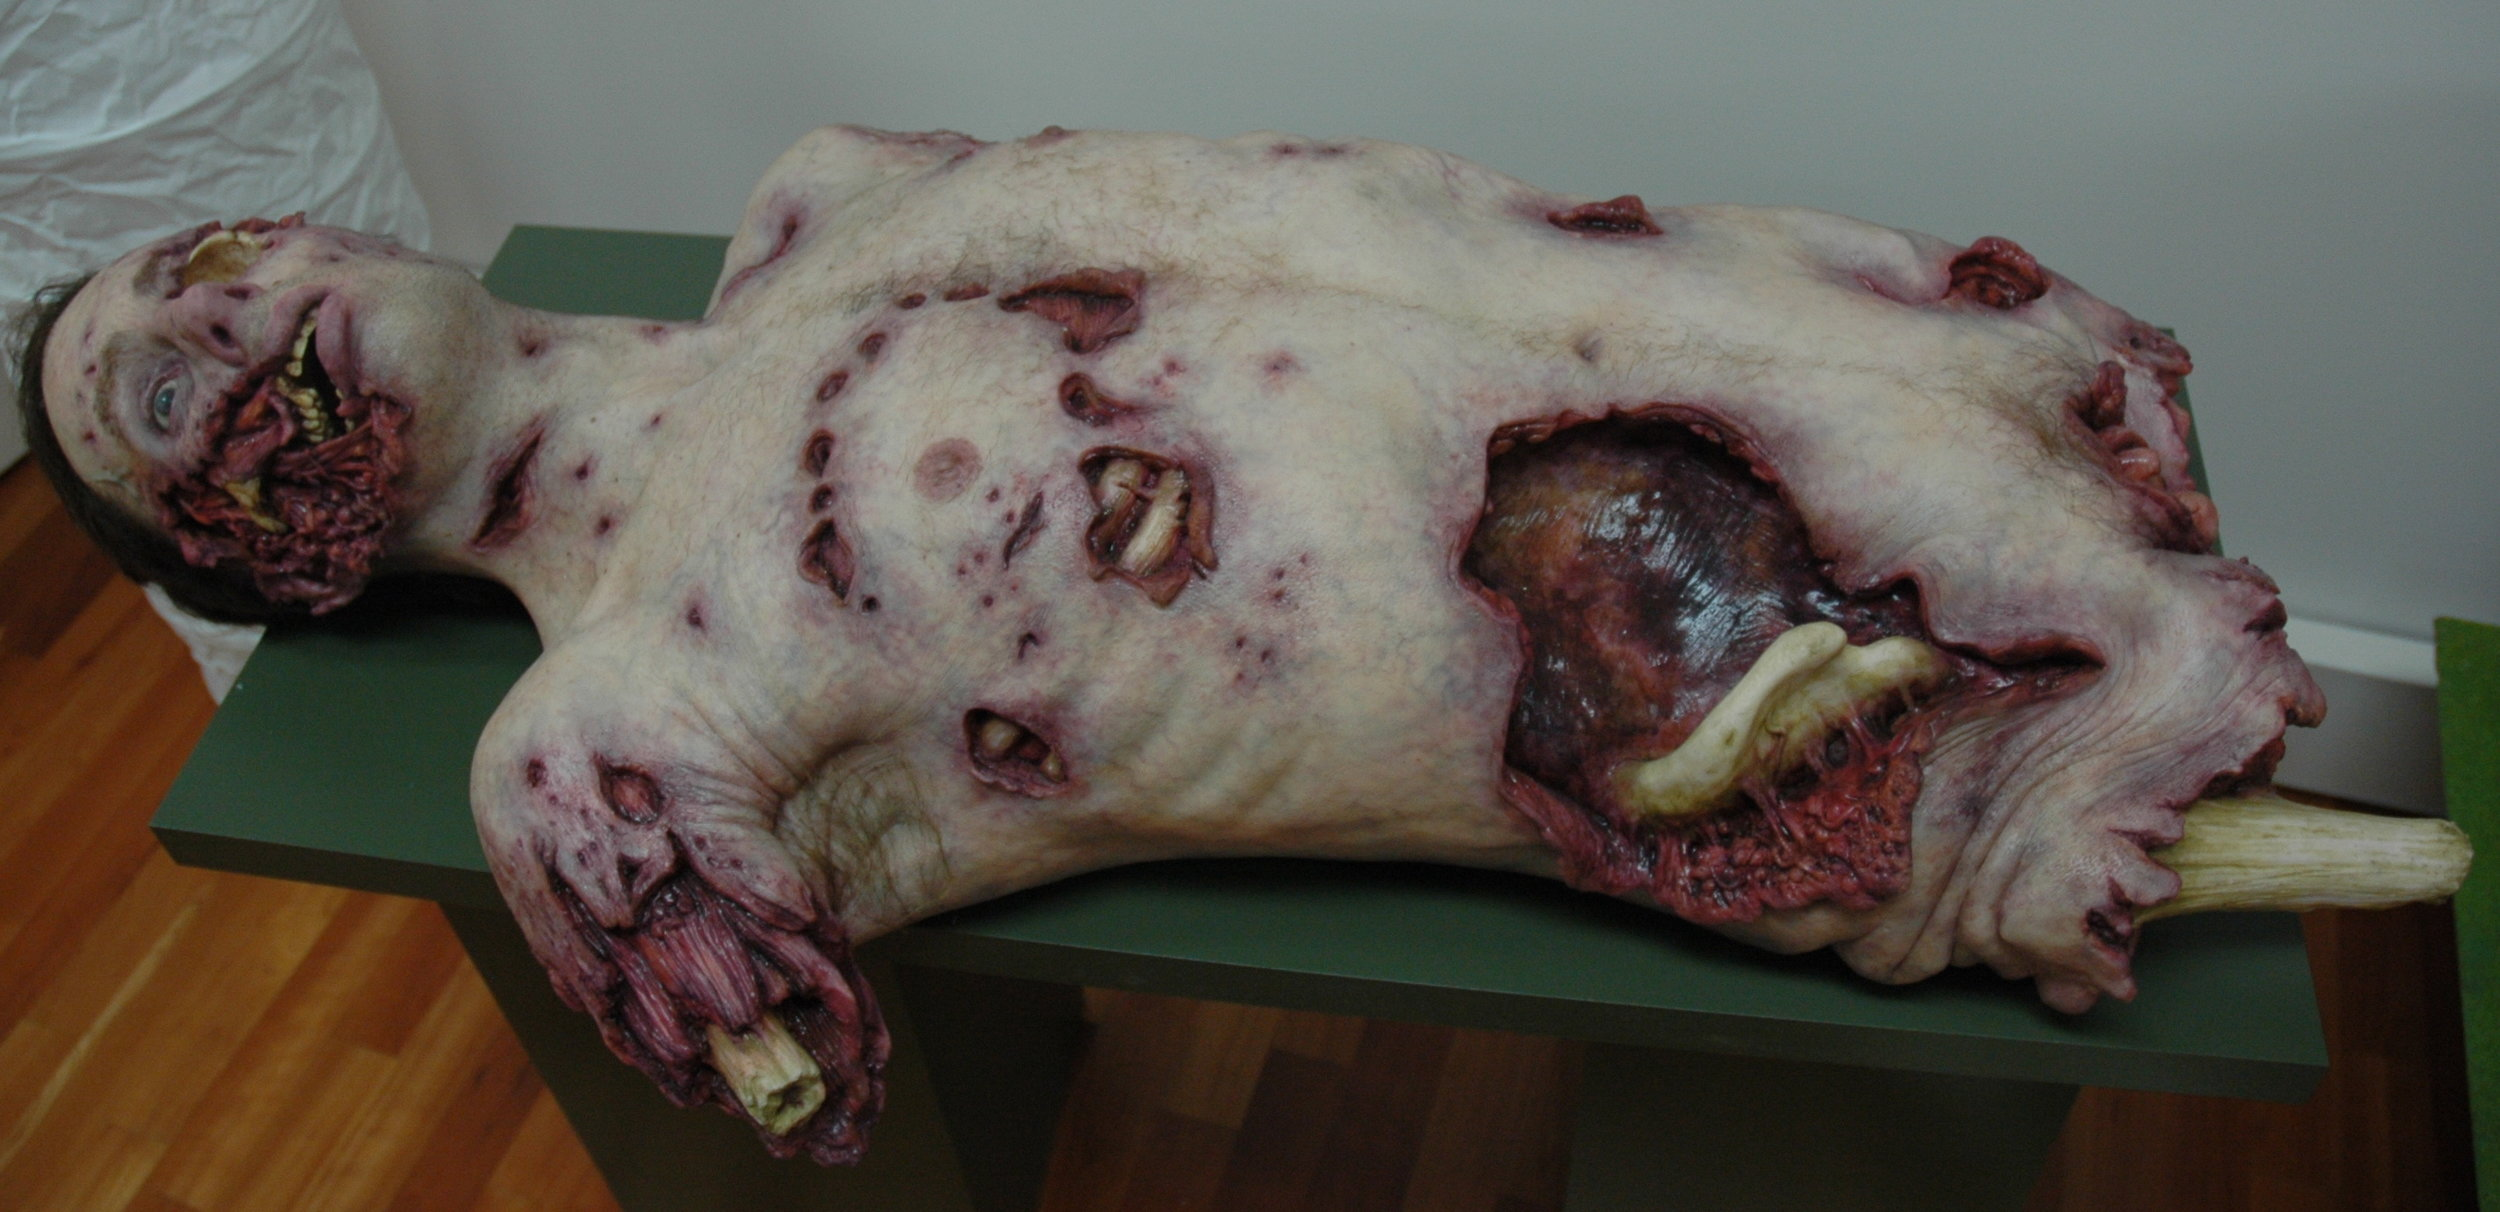 Make-Up Effects Group prosthetic torso